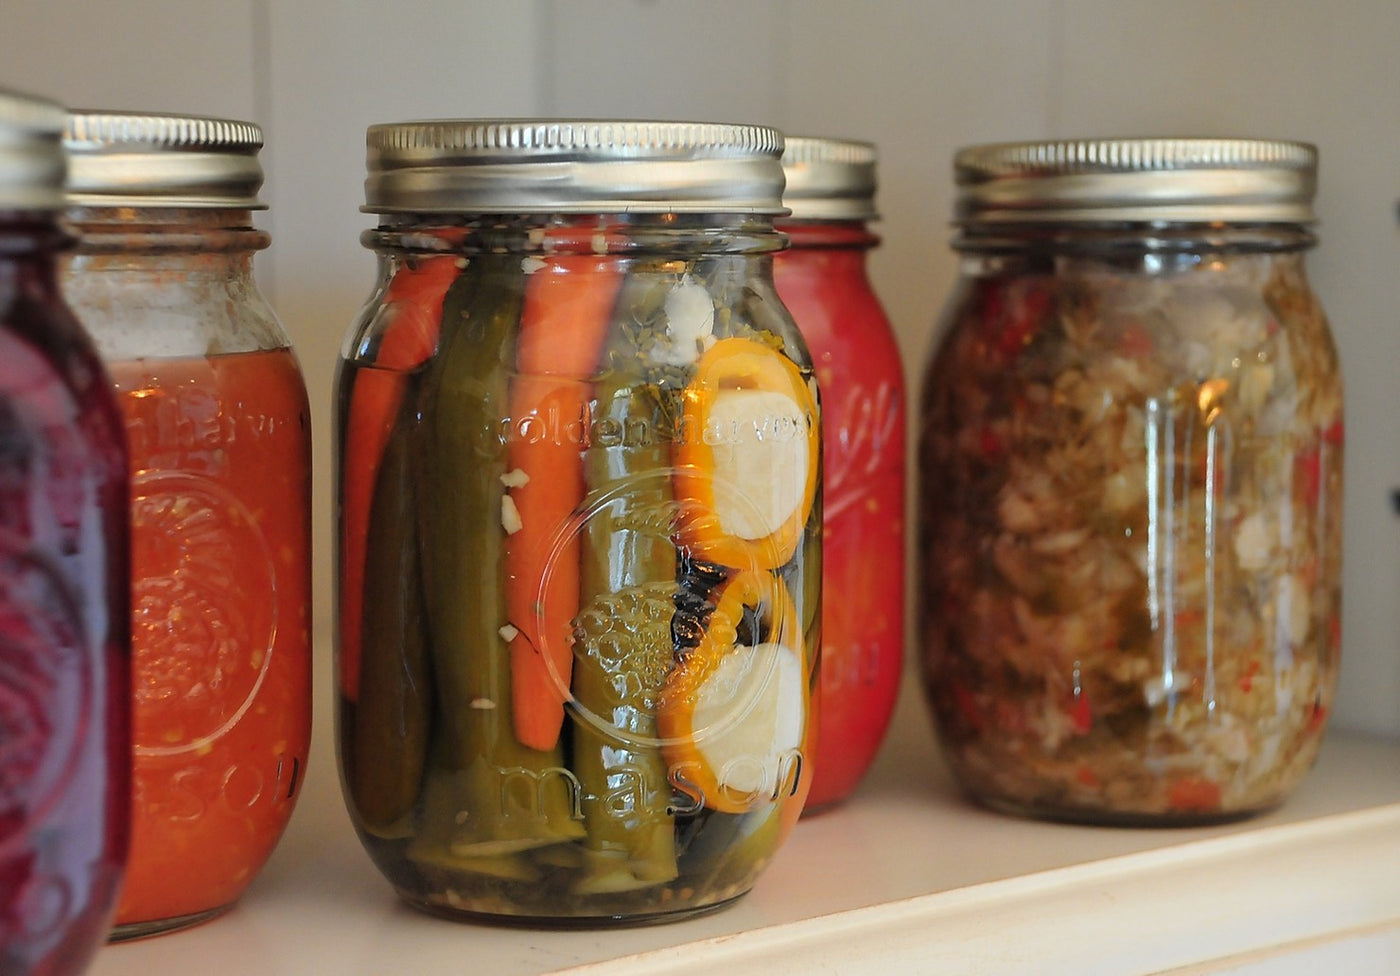 Part 3: Gut bacteria - what's on the menu? Fermented foods